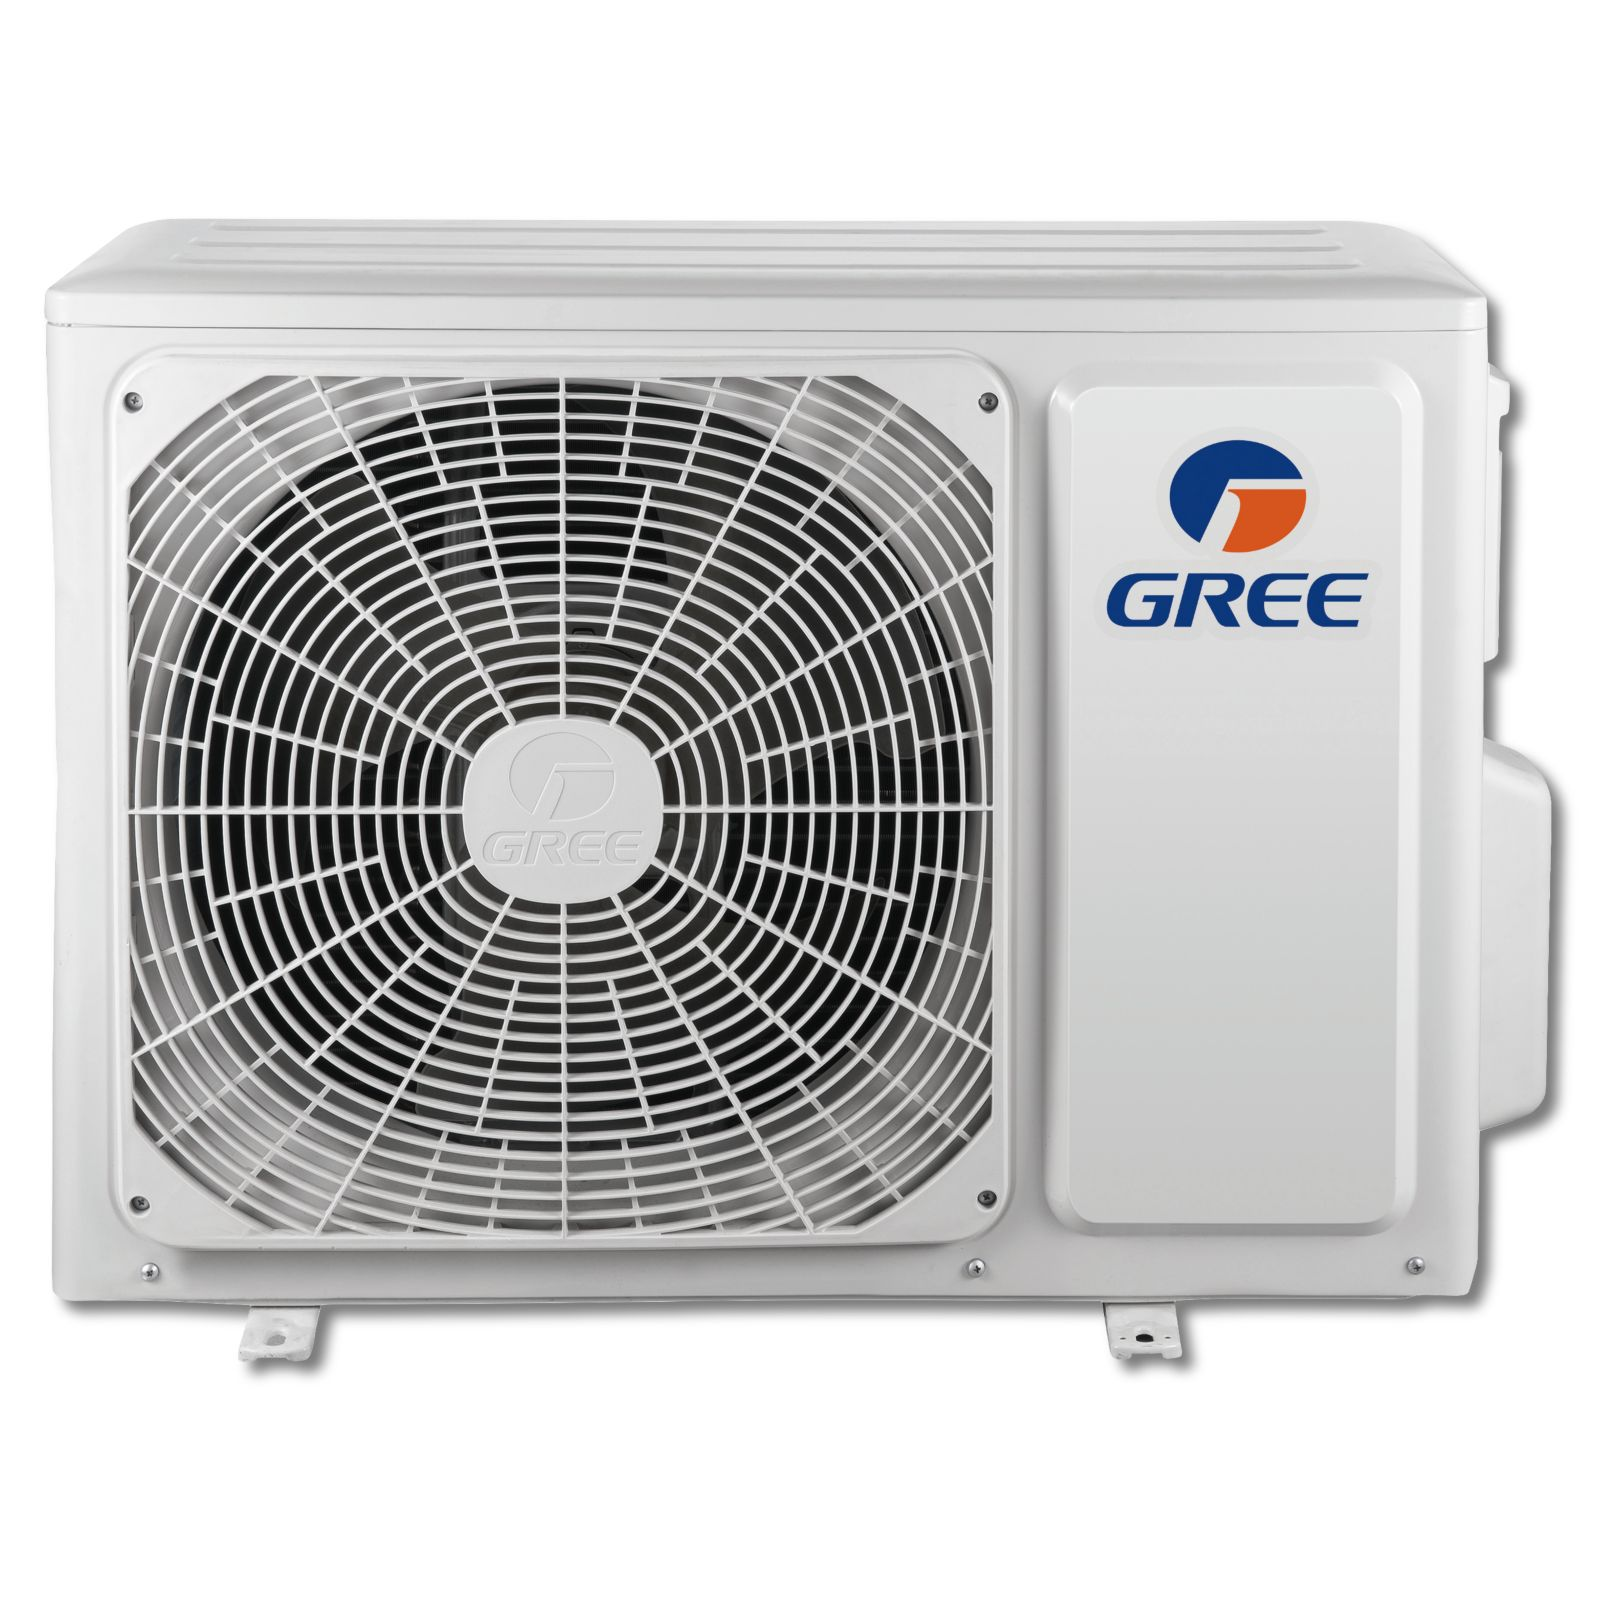 GREE CROWN09HP230V1AO - Crown Ductless Wall Mounted Heat Pump Outdoor Unit, R410A 9K BTU, 30.5 SEER, 15.8 EER, 208-230/60